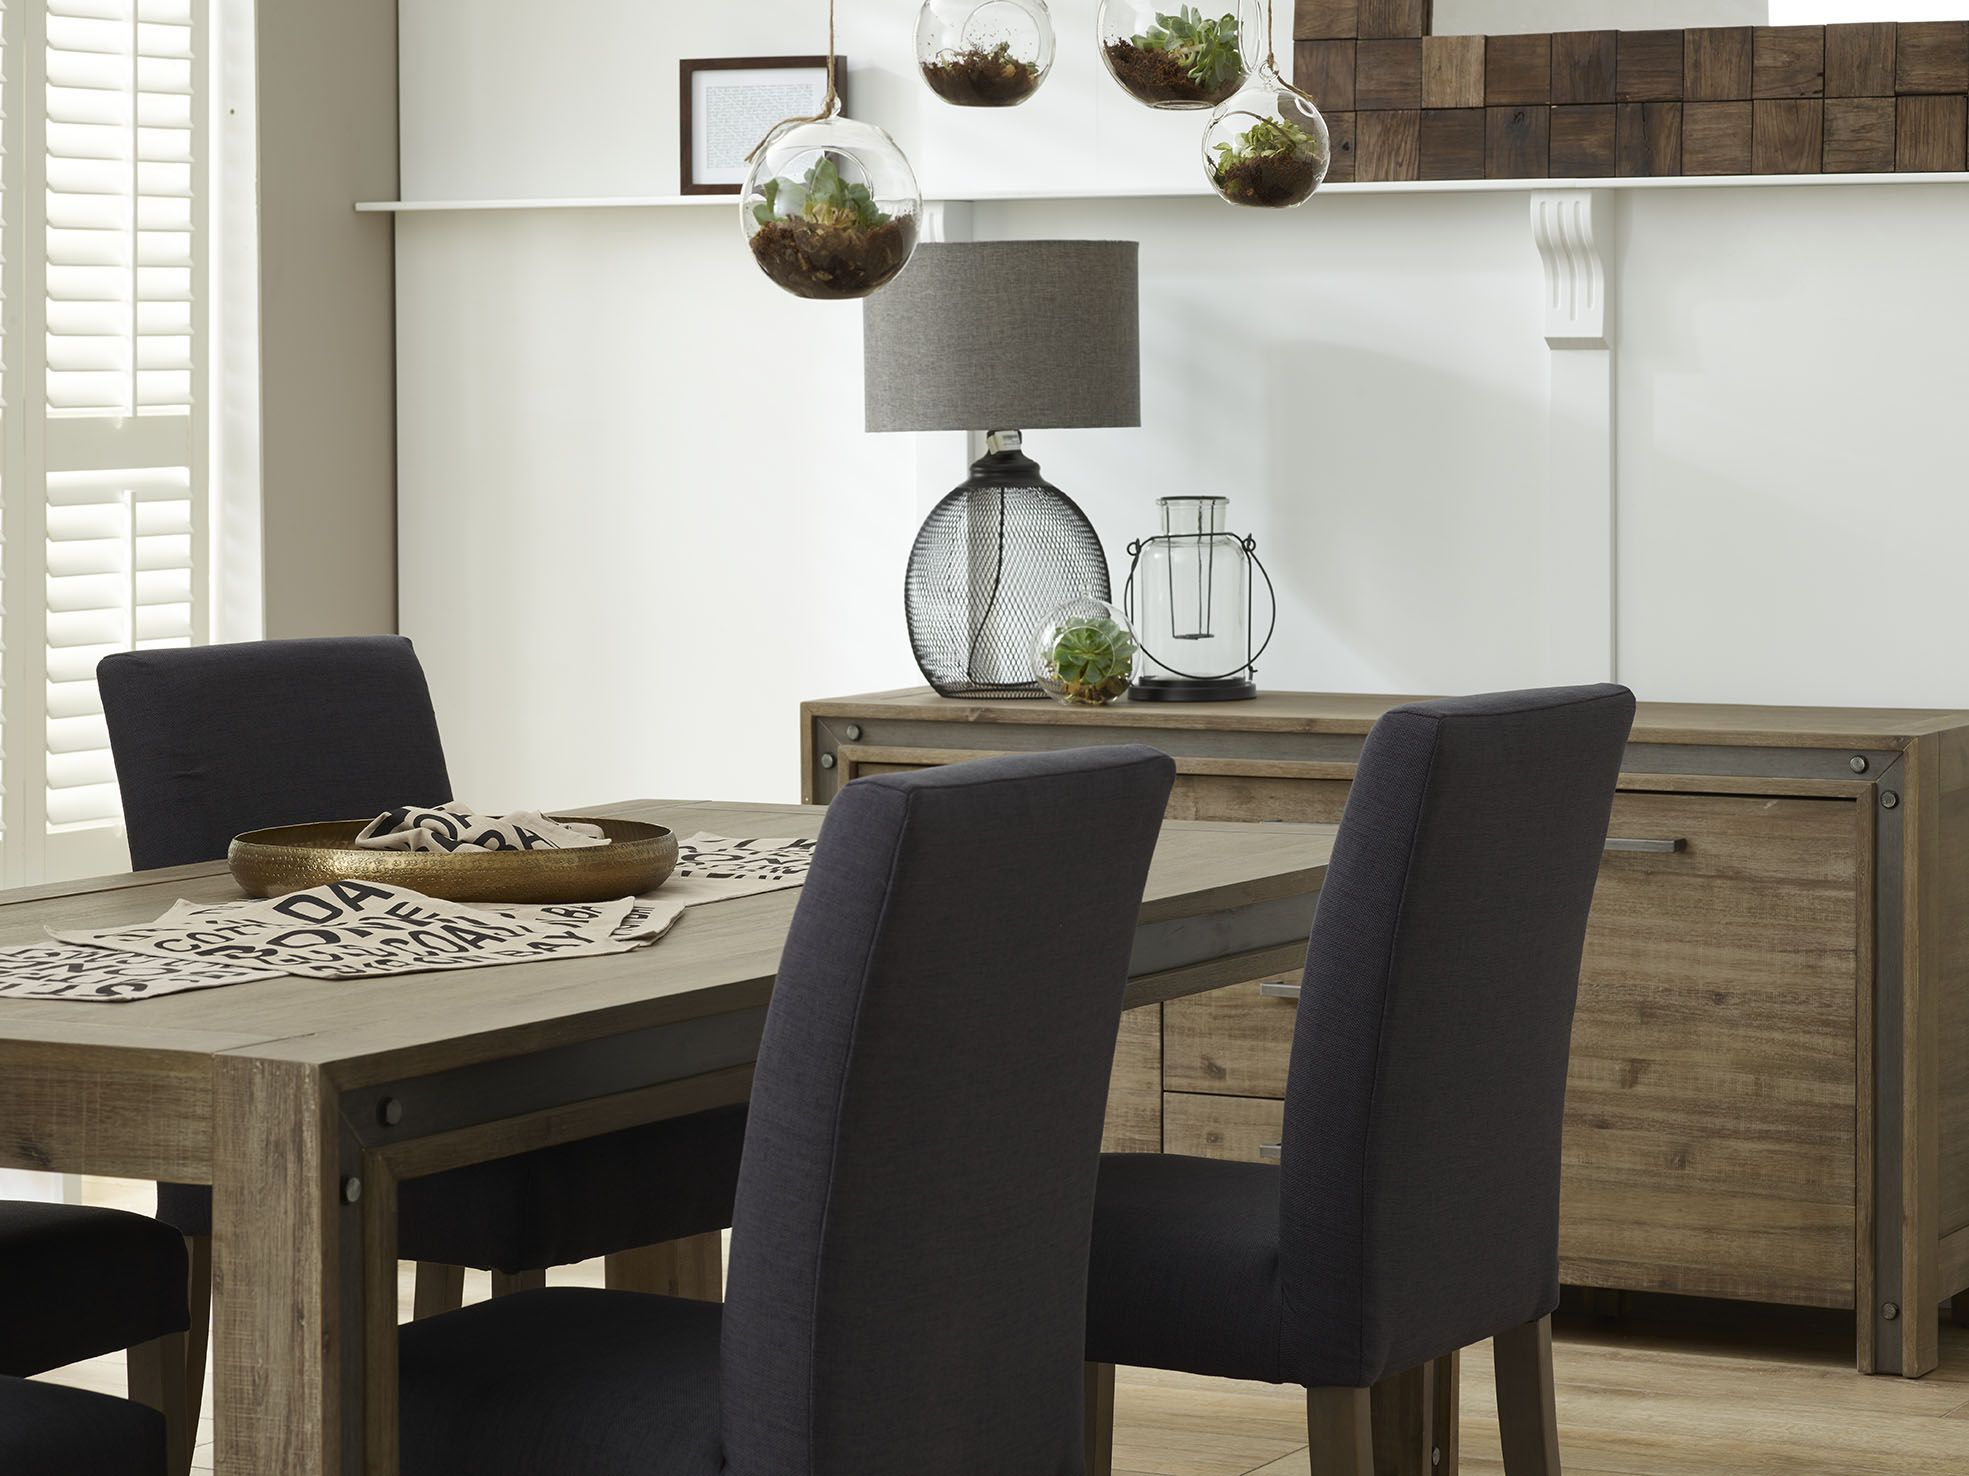 lexington dining chairs modern adirondack focus on furniture s table and buffet with nevada in charcoal linen shop the look at www focusonfurniture com au